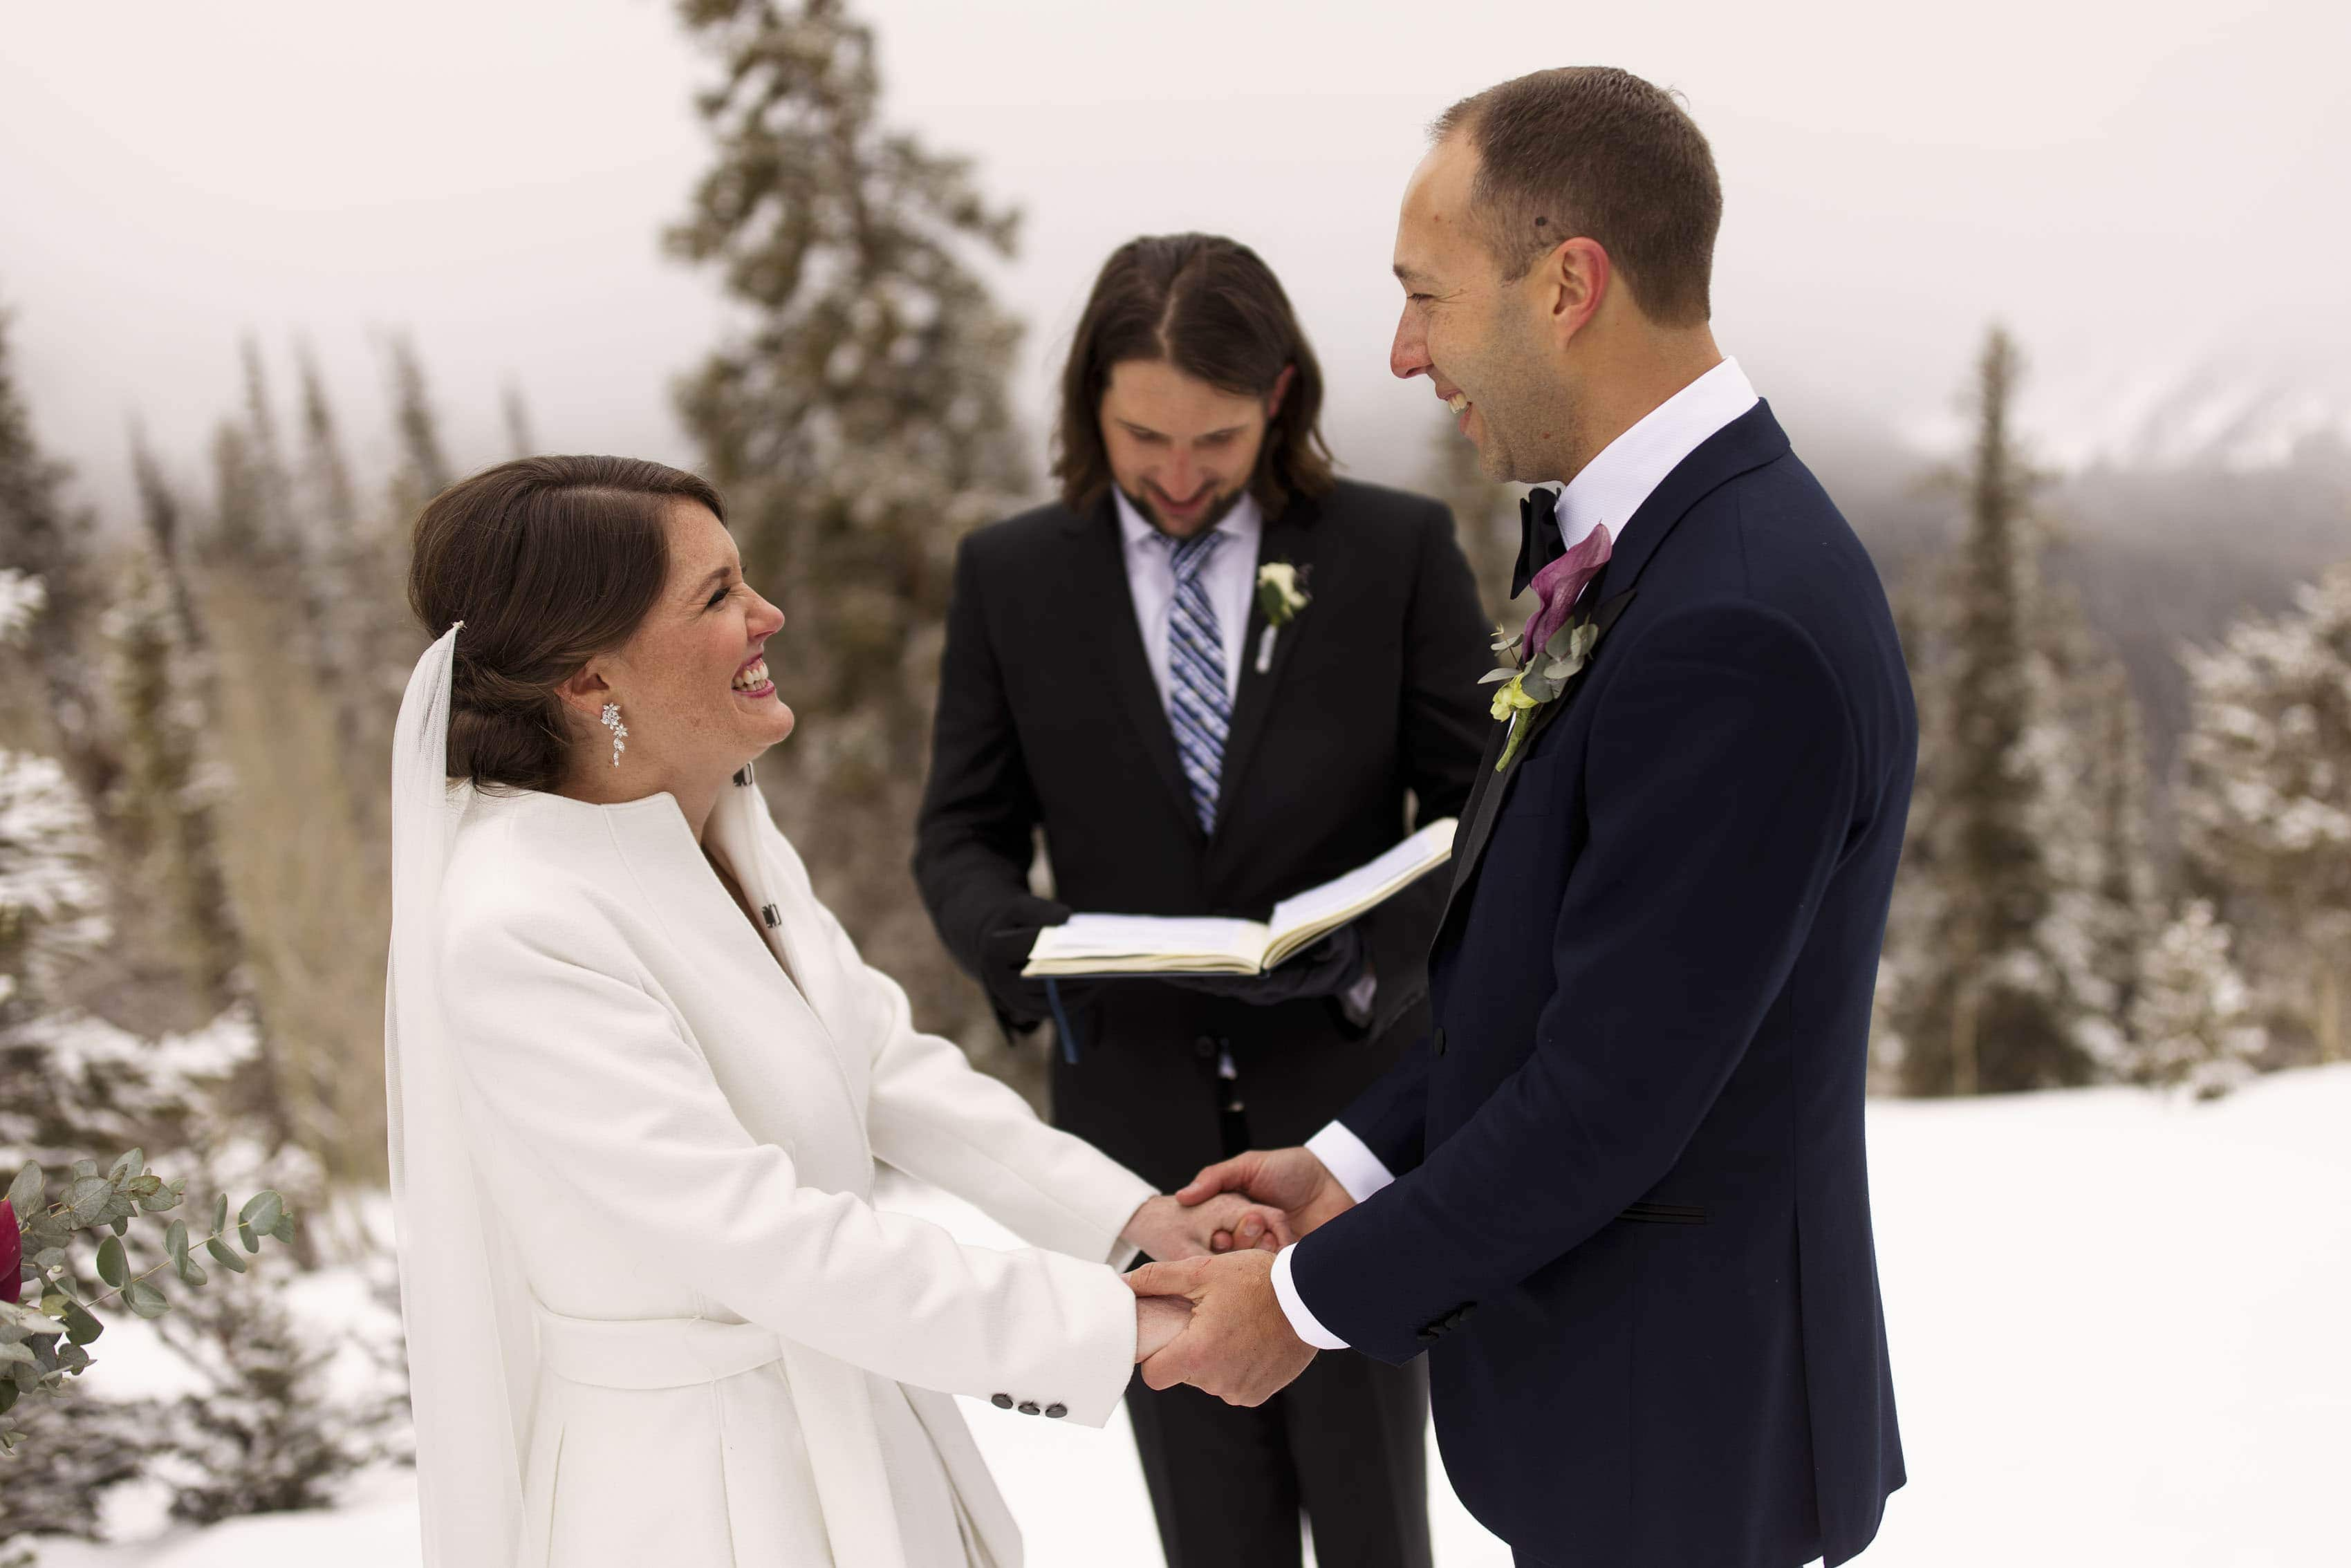 The bride and groom share a laugh on the wedding deck during their Aspen micro wedding